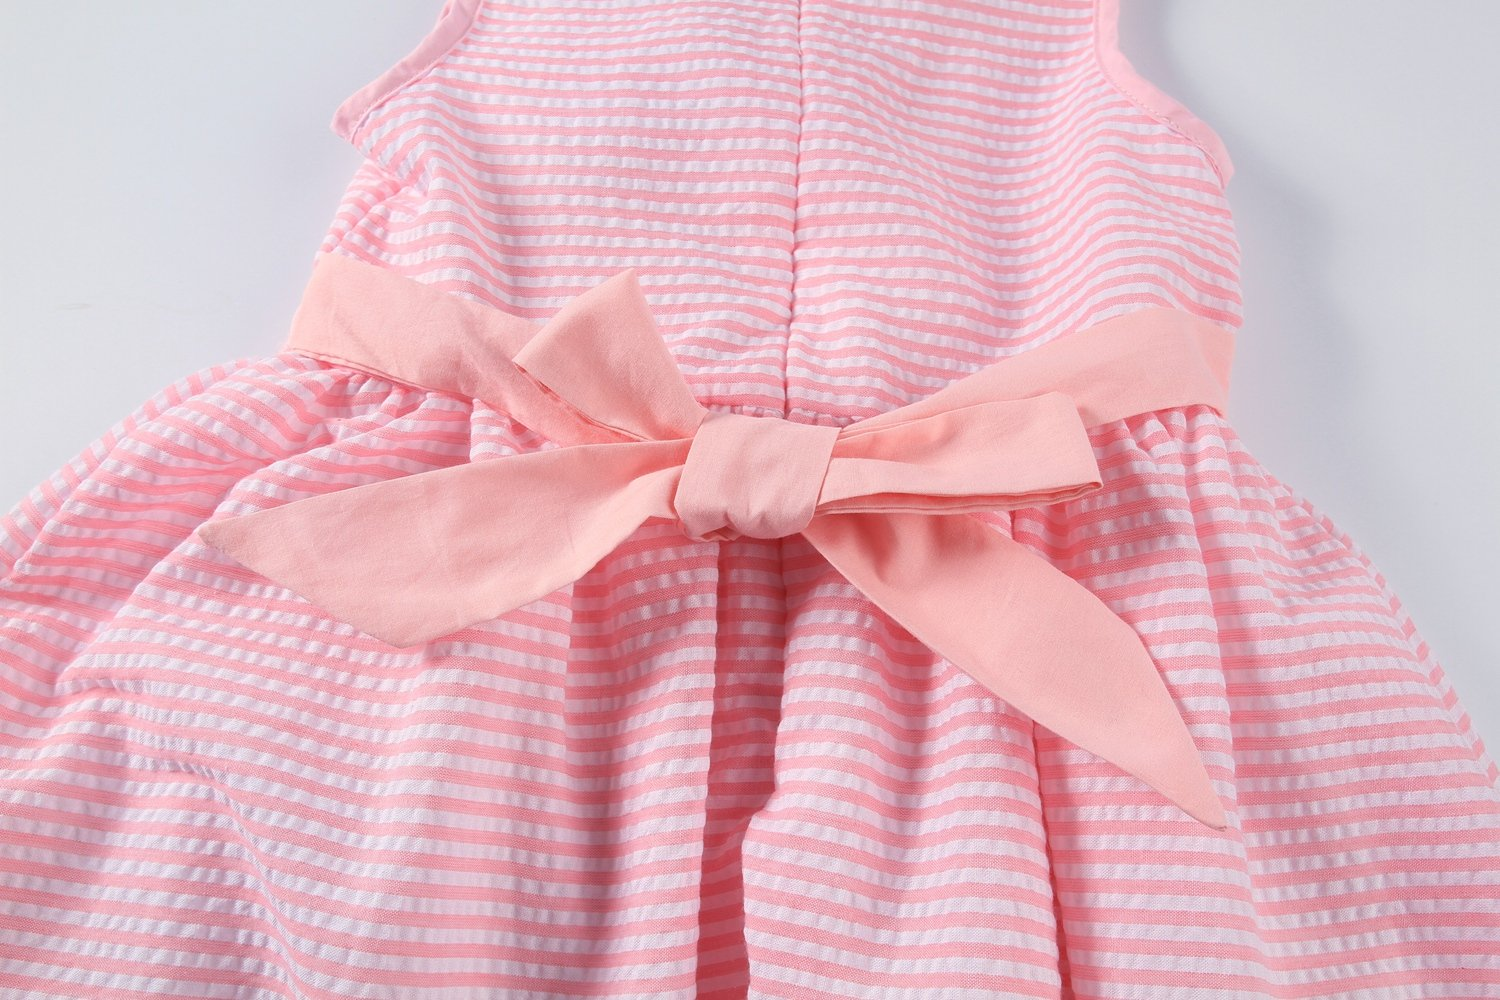 Sharequeen Striped Cotton Big Girls Summer Dress Dog Bird Cat Embroidery Pink Color A090(Pink Stripe, 6 Years) by Sharequeen (Image #6)